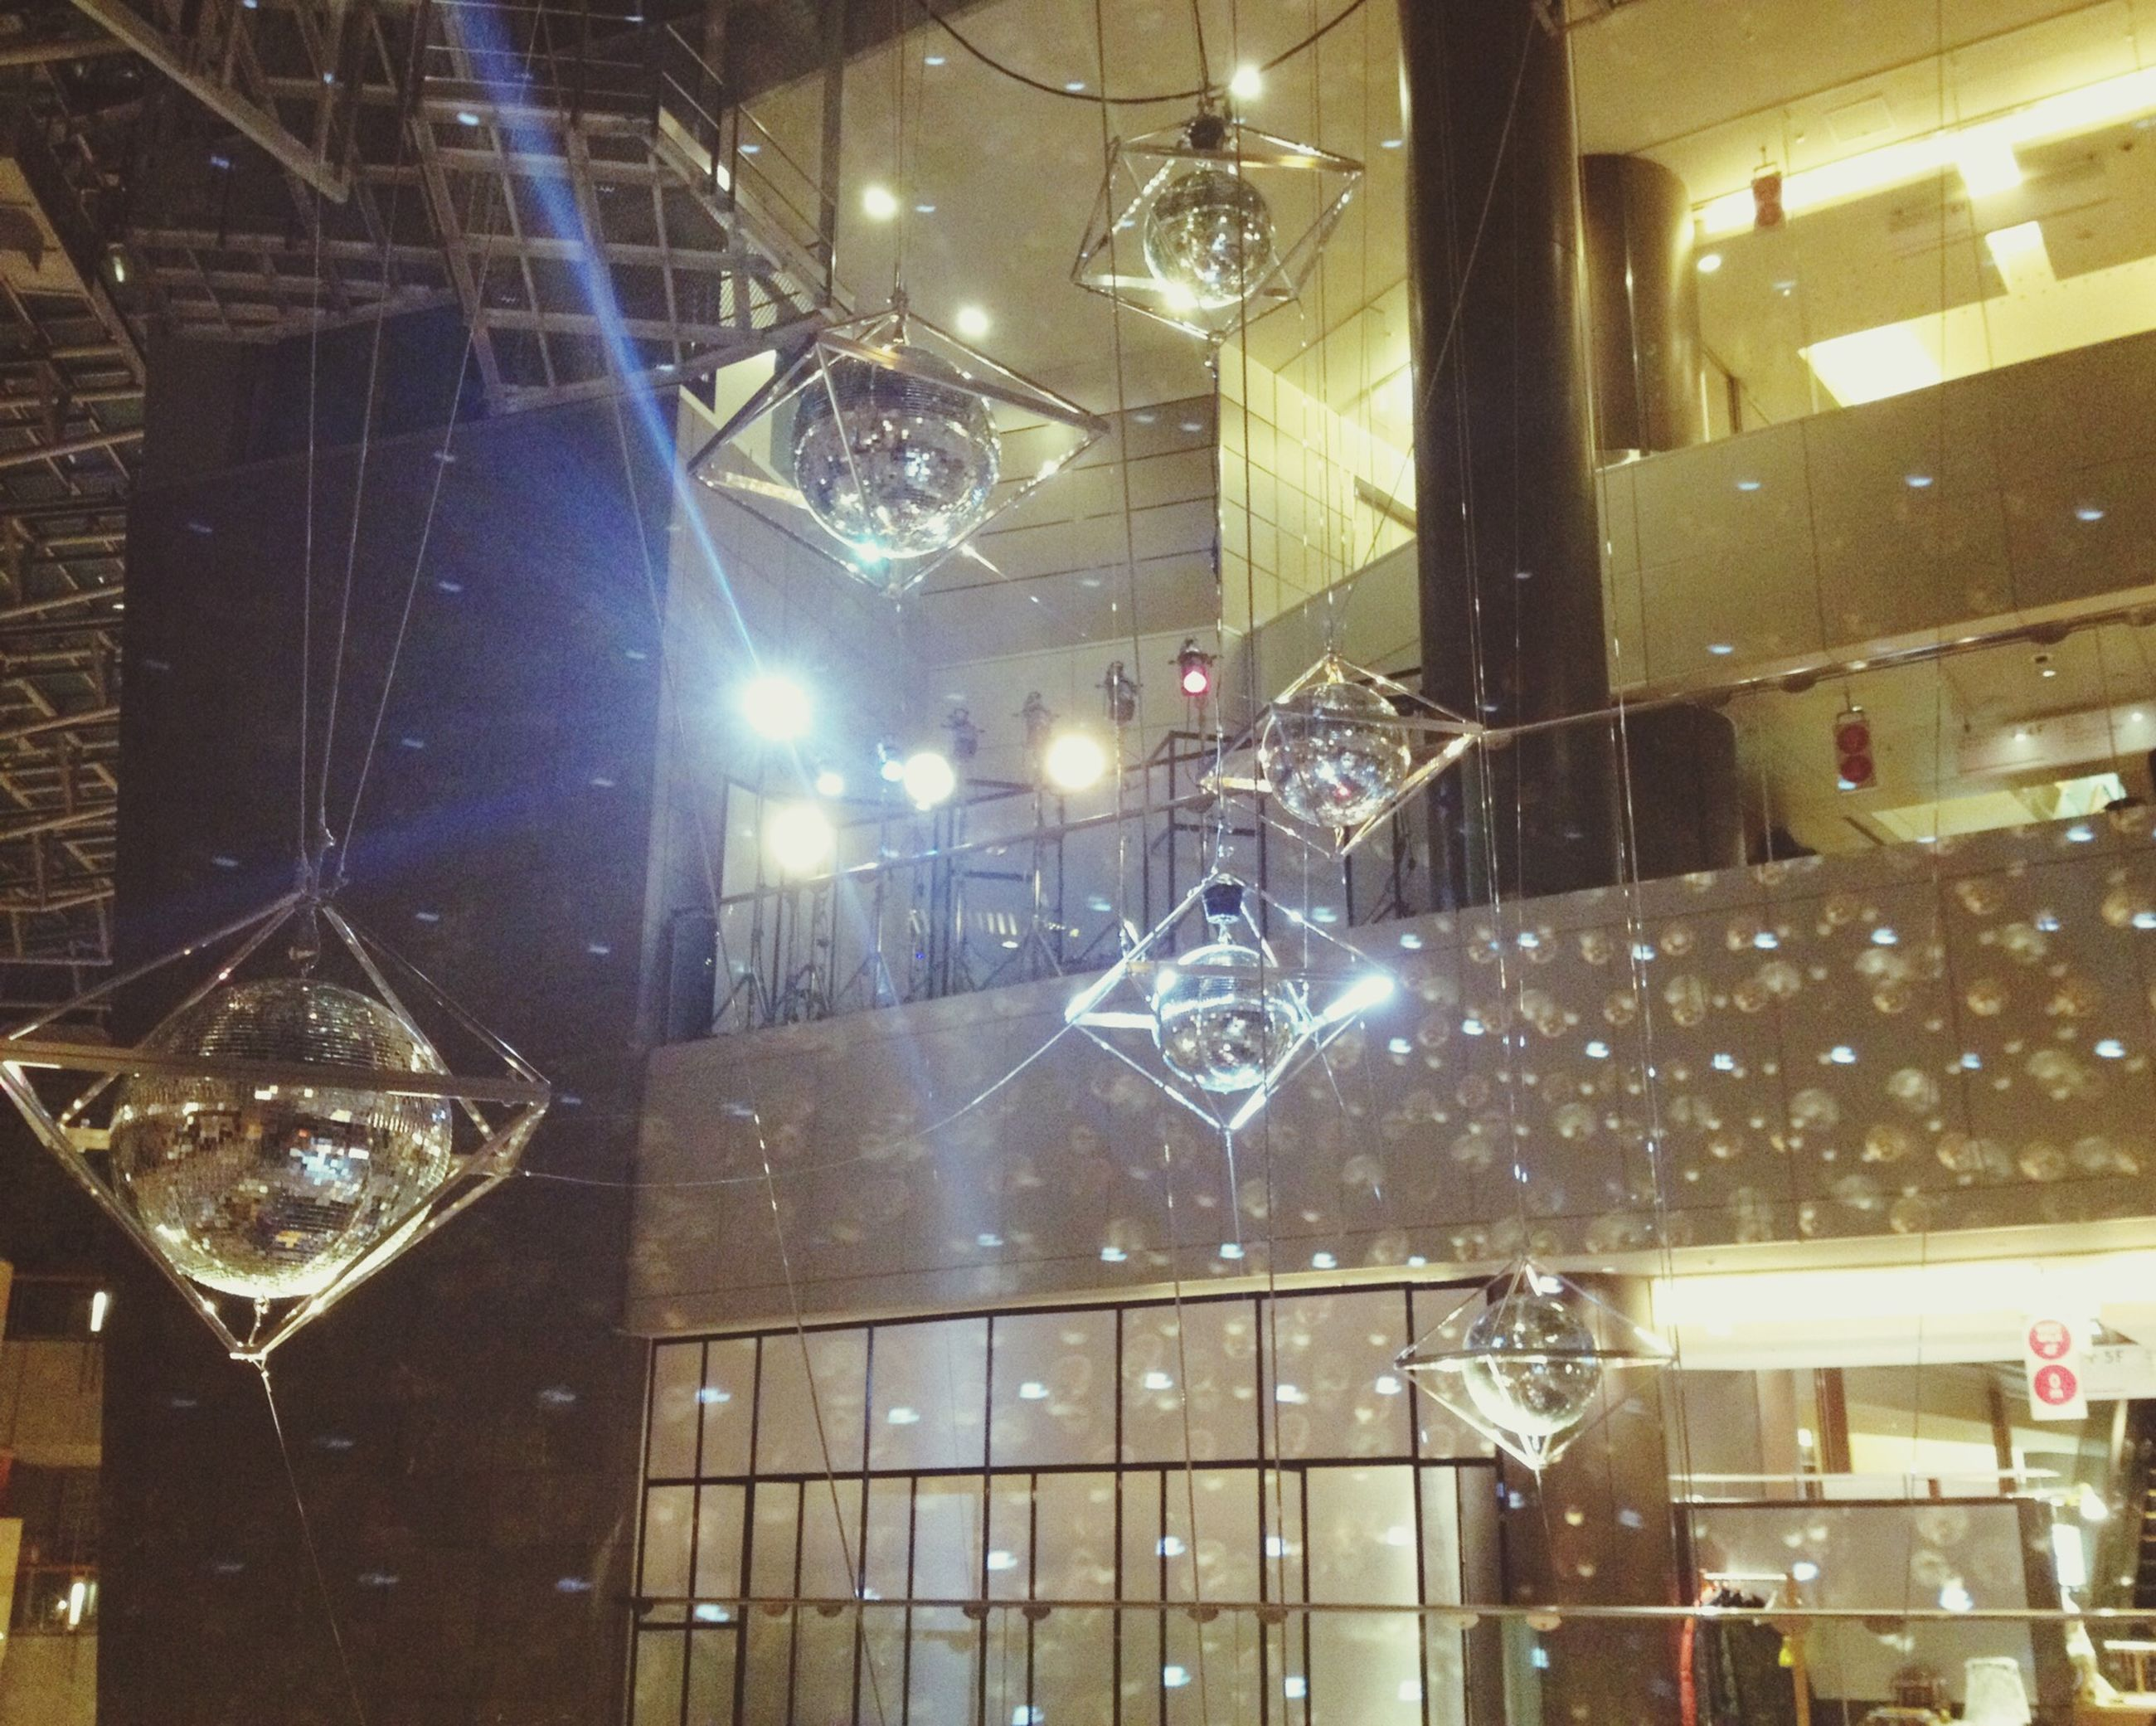 indoors, illuminated, glass - material, window, lighting equipment, transparent, night, built structure, architecture, reflection, electricity, electric light, no people, glass, building exterior, light - natural phenomenon, low angle view, light bulb, hanging, building